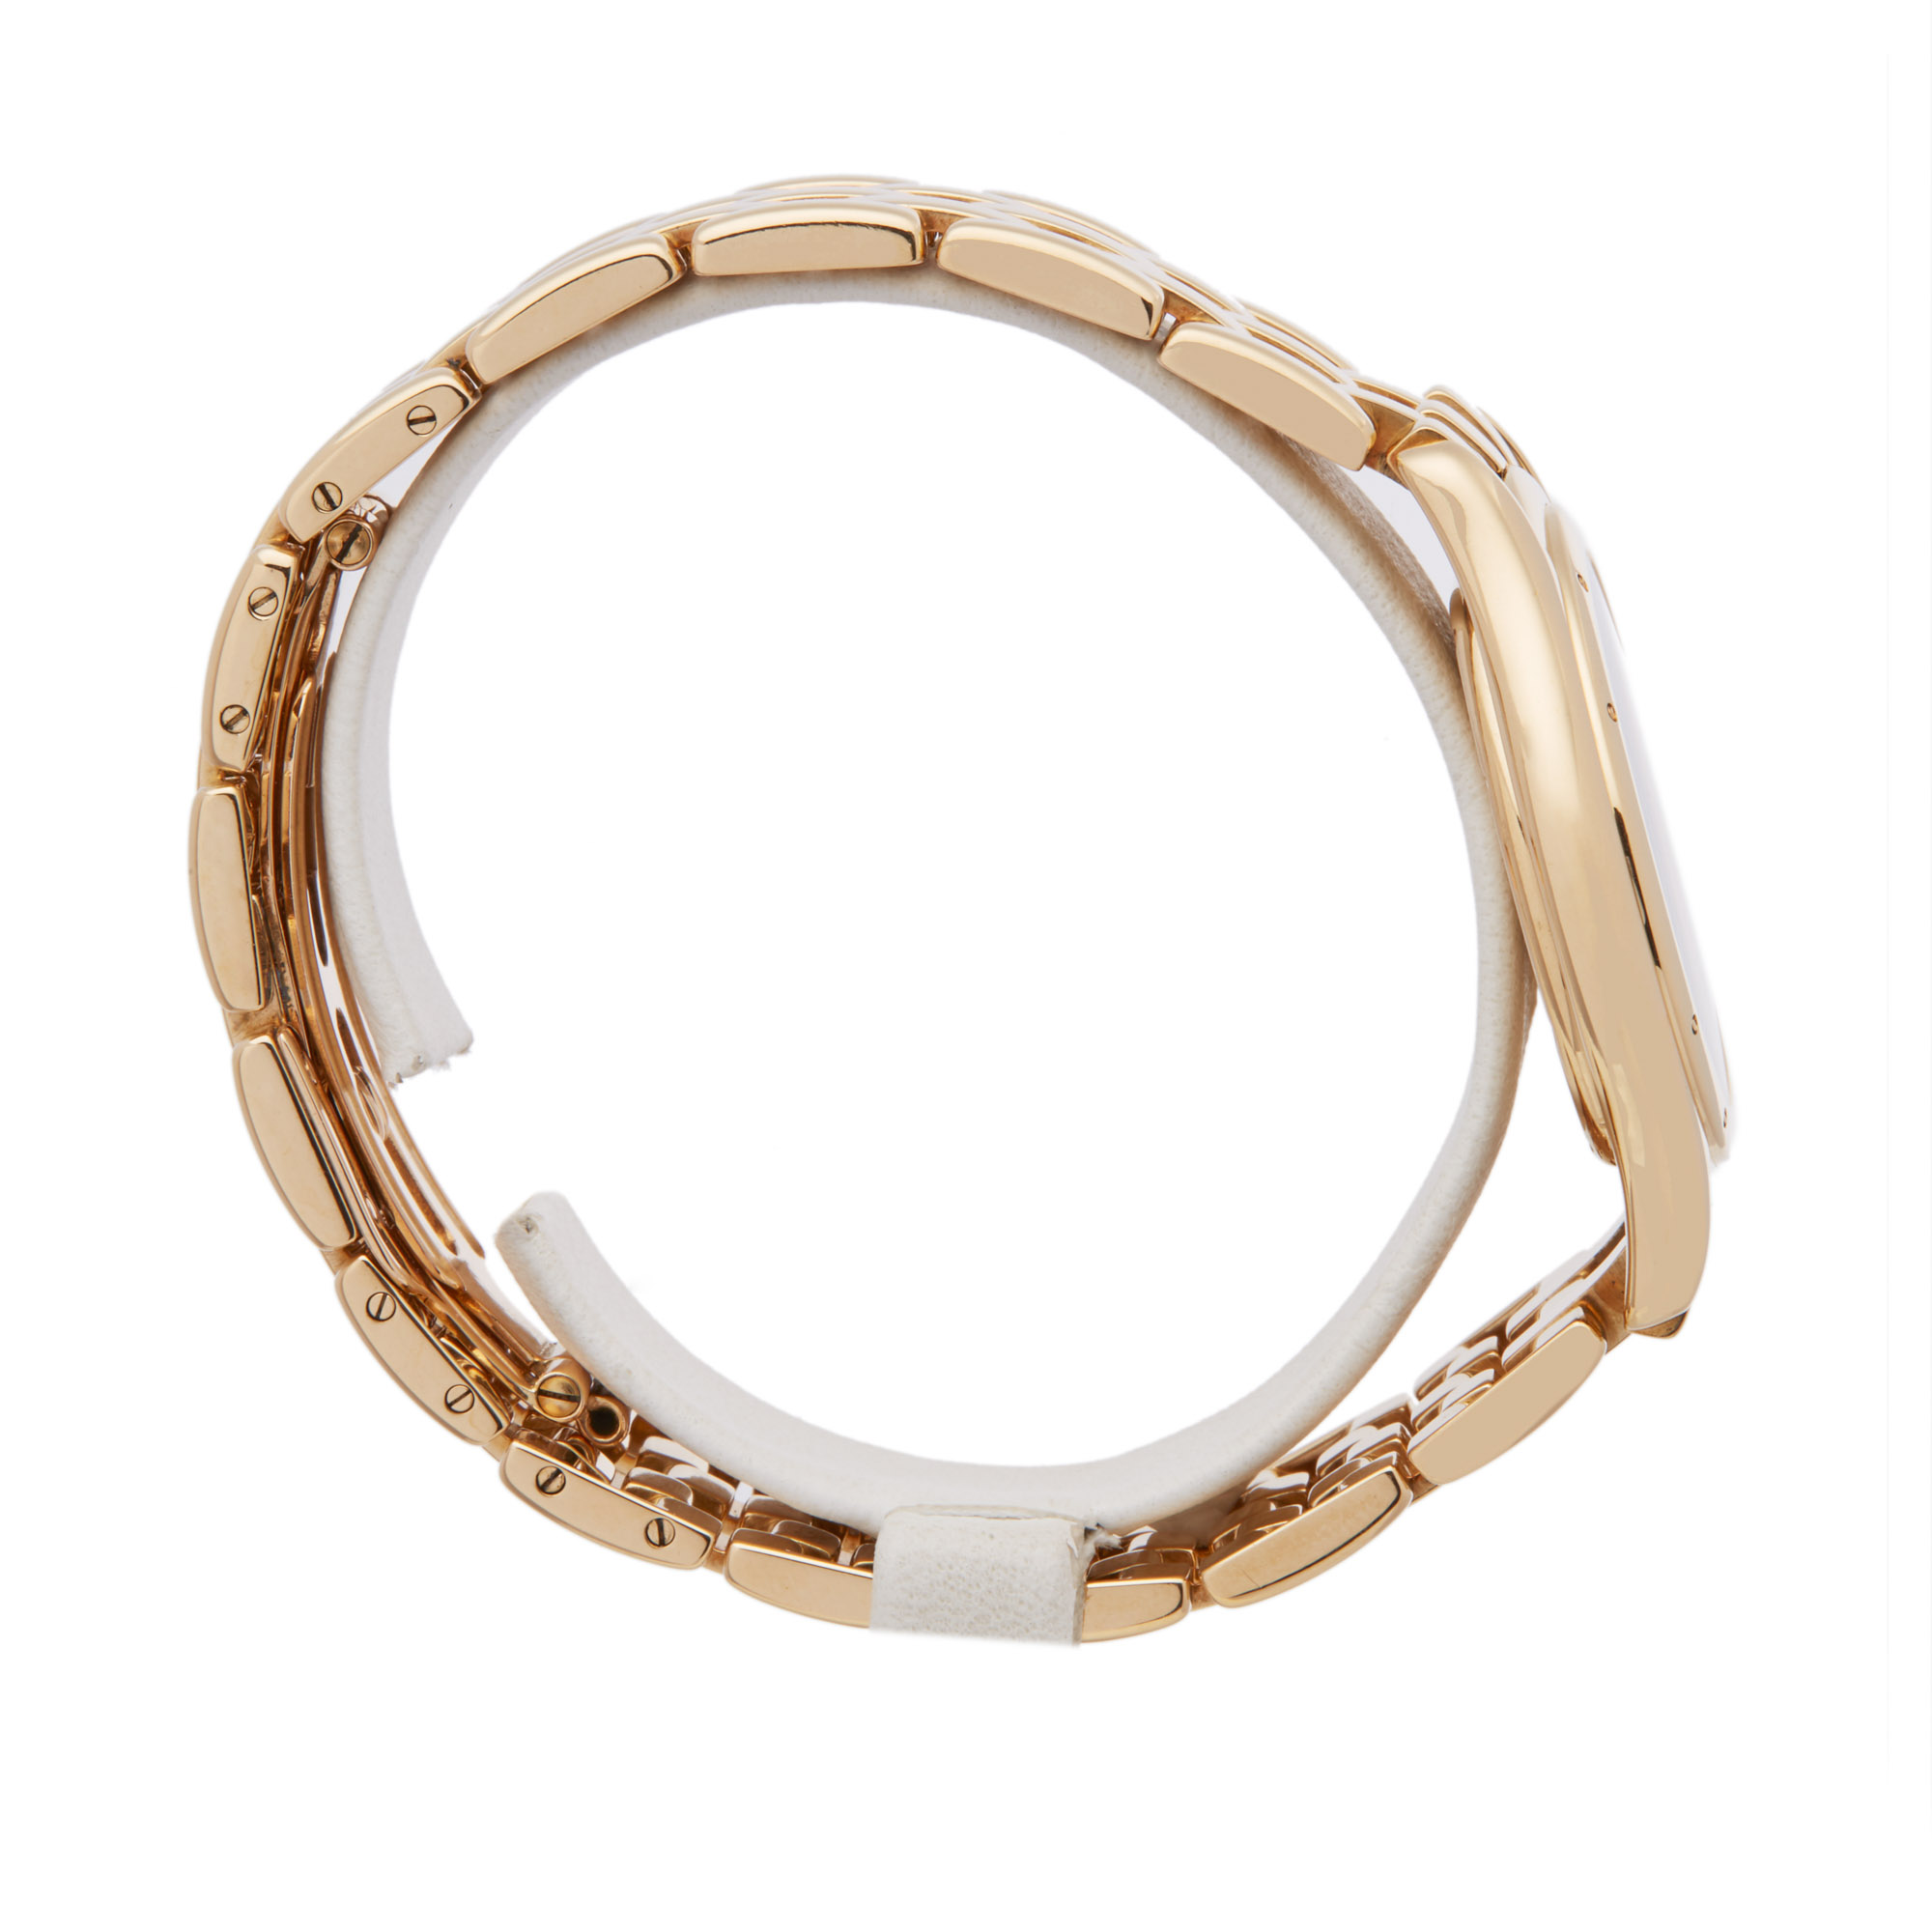 Cartier Panthère Cougar 116000R Unisex Yellow Gold Watch - Image 6 of 8